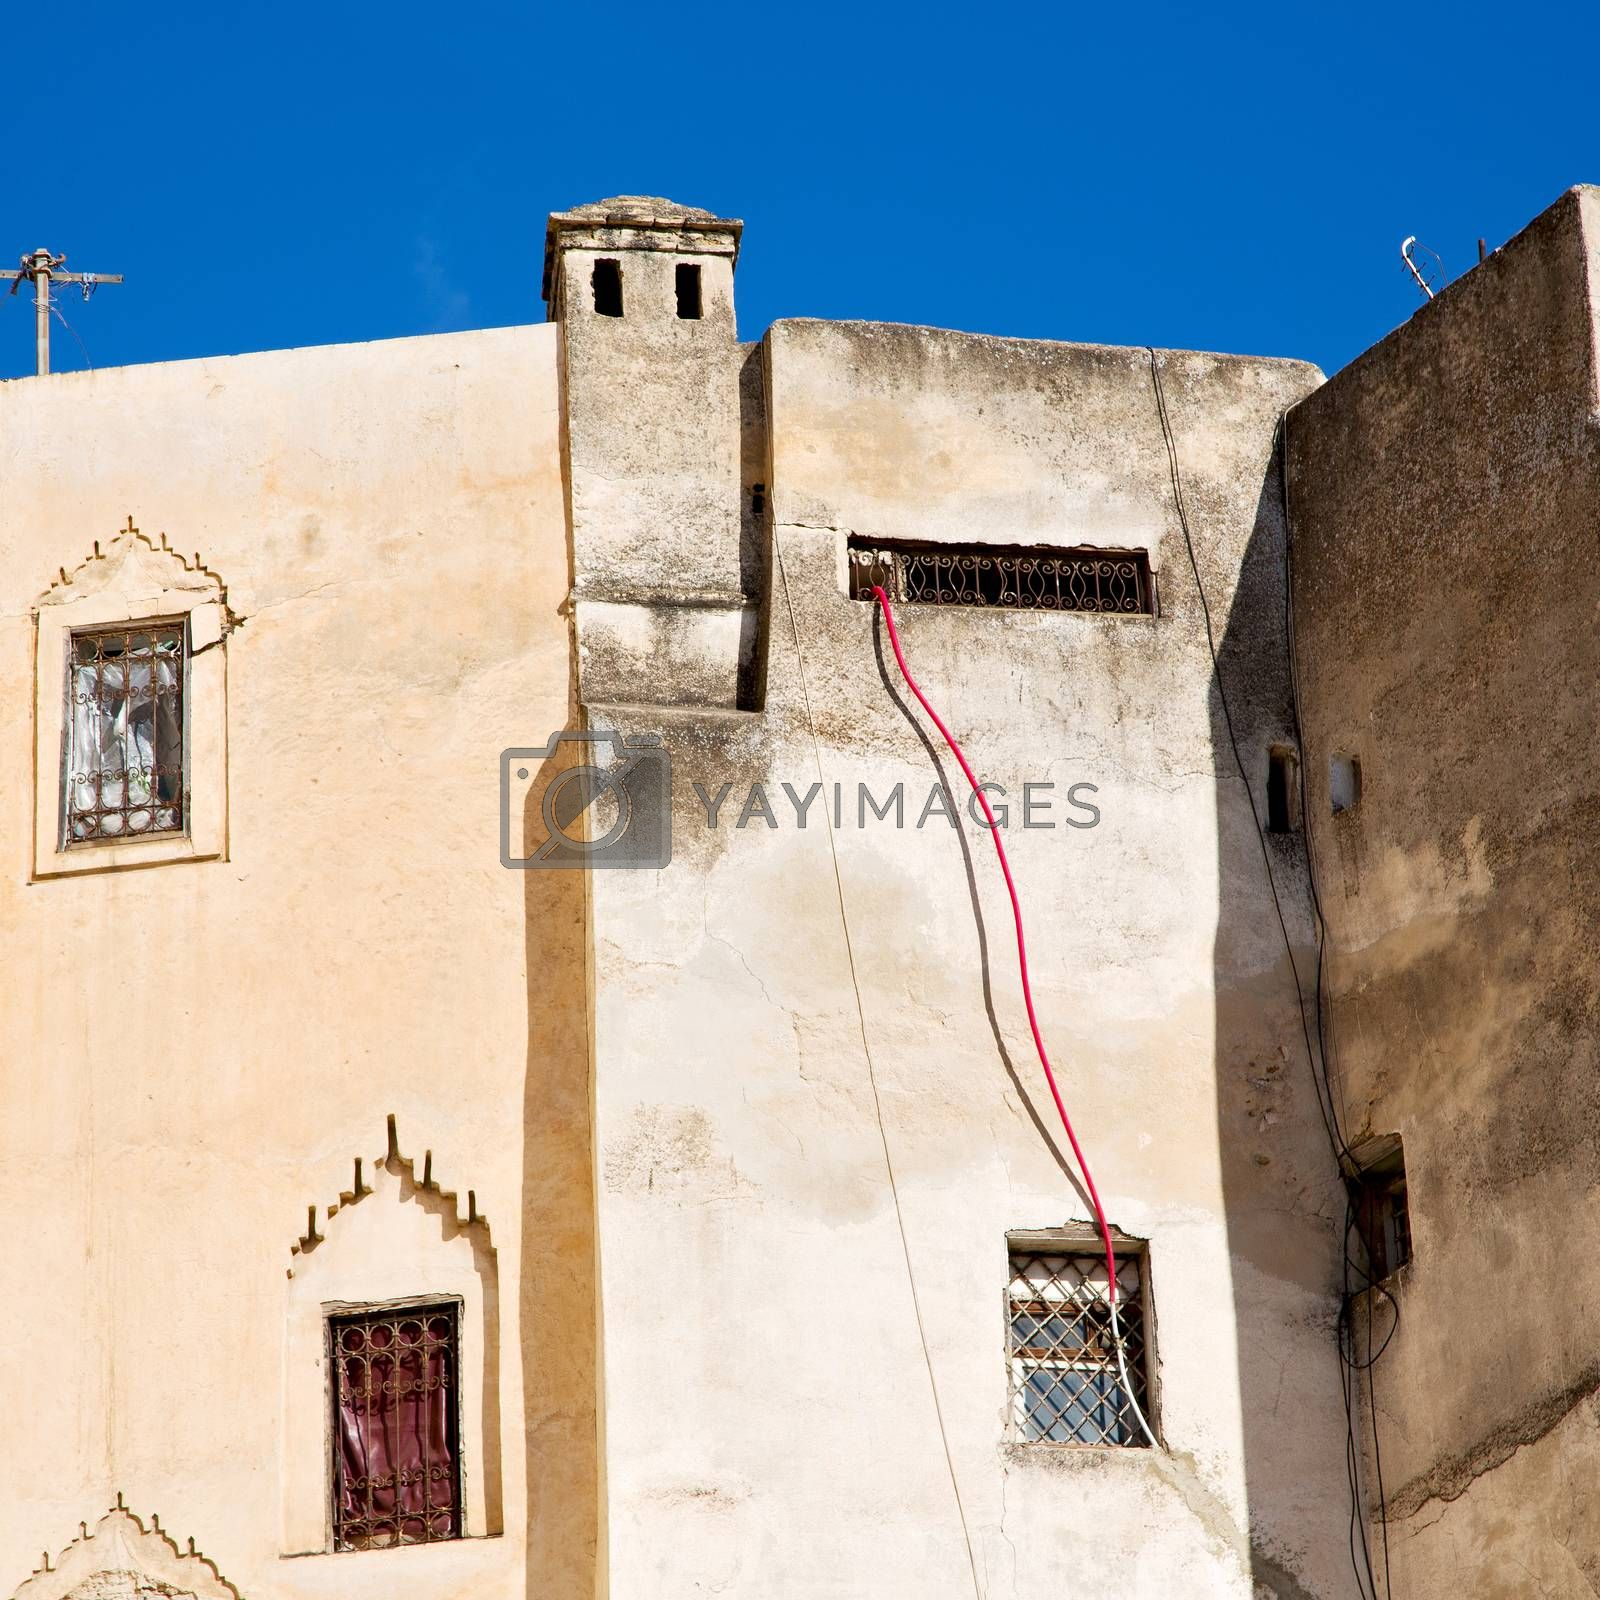 Royalty free image of morocco land construction and history in the sky by lkpro